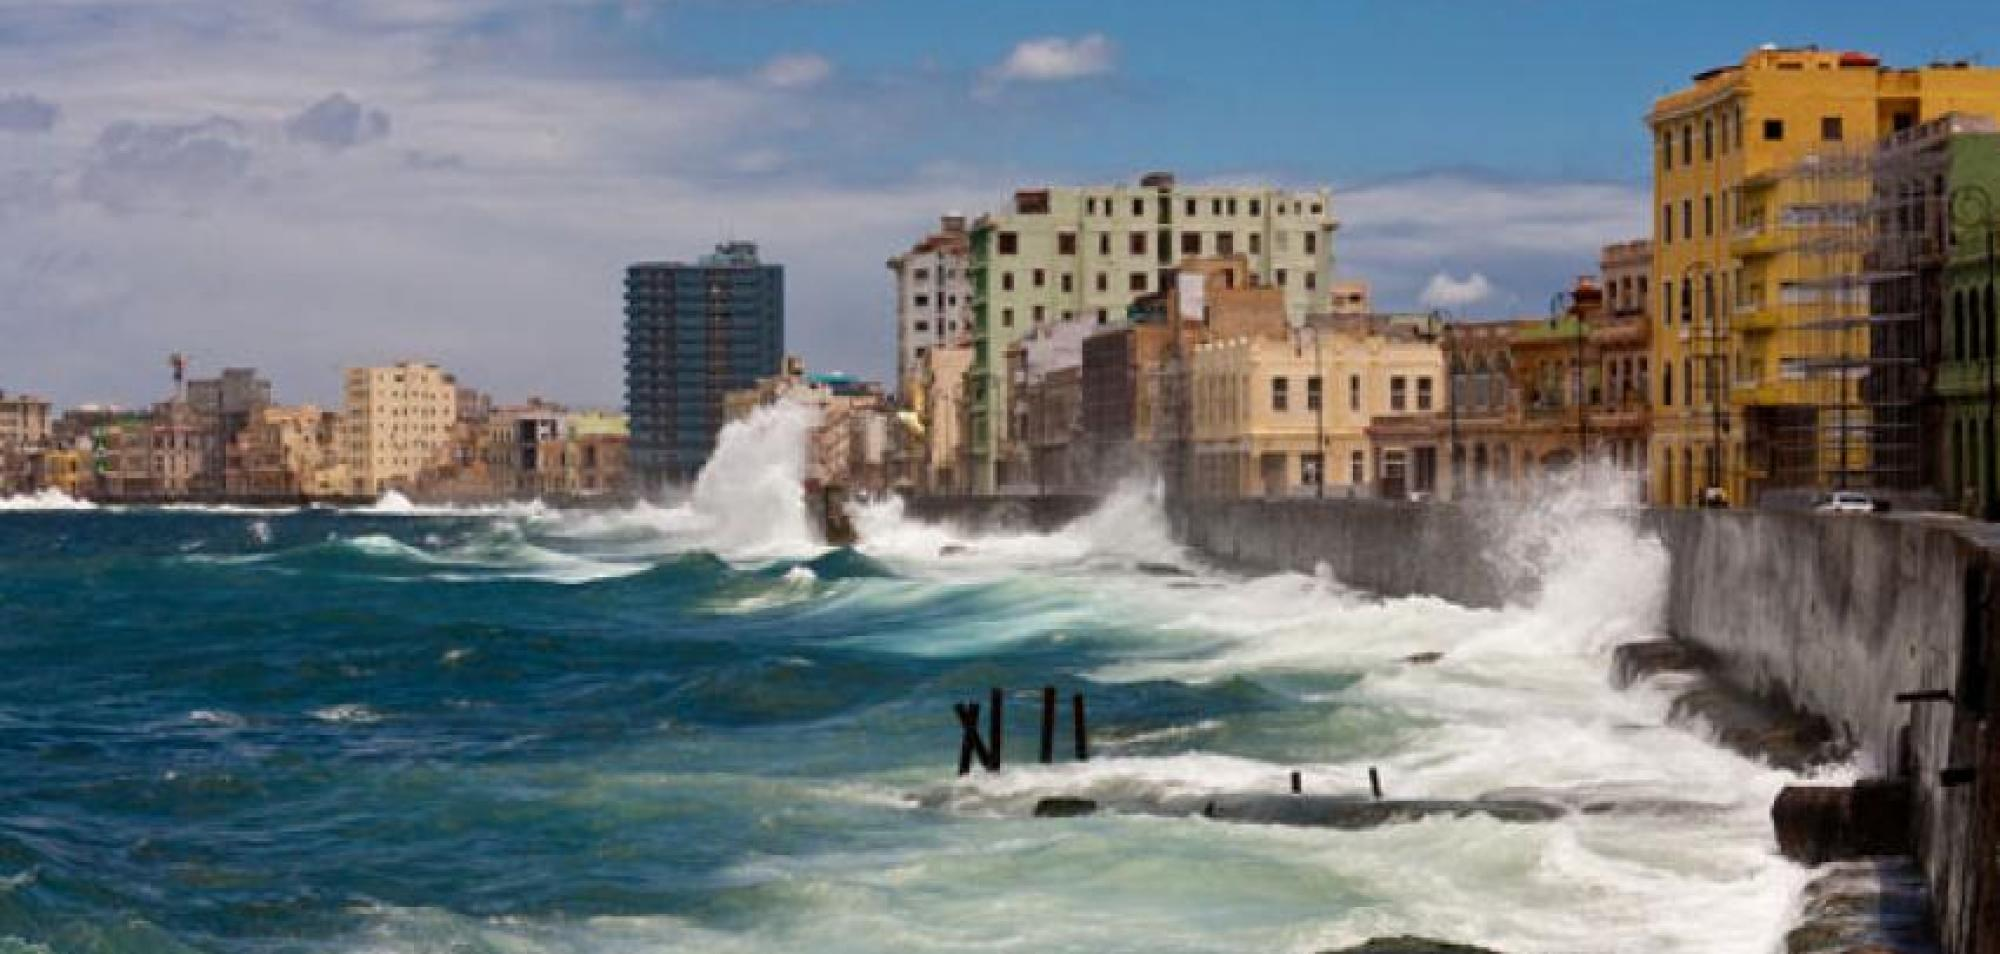 Dealing with Climate Change, a Priority for Cuba